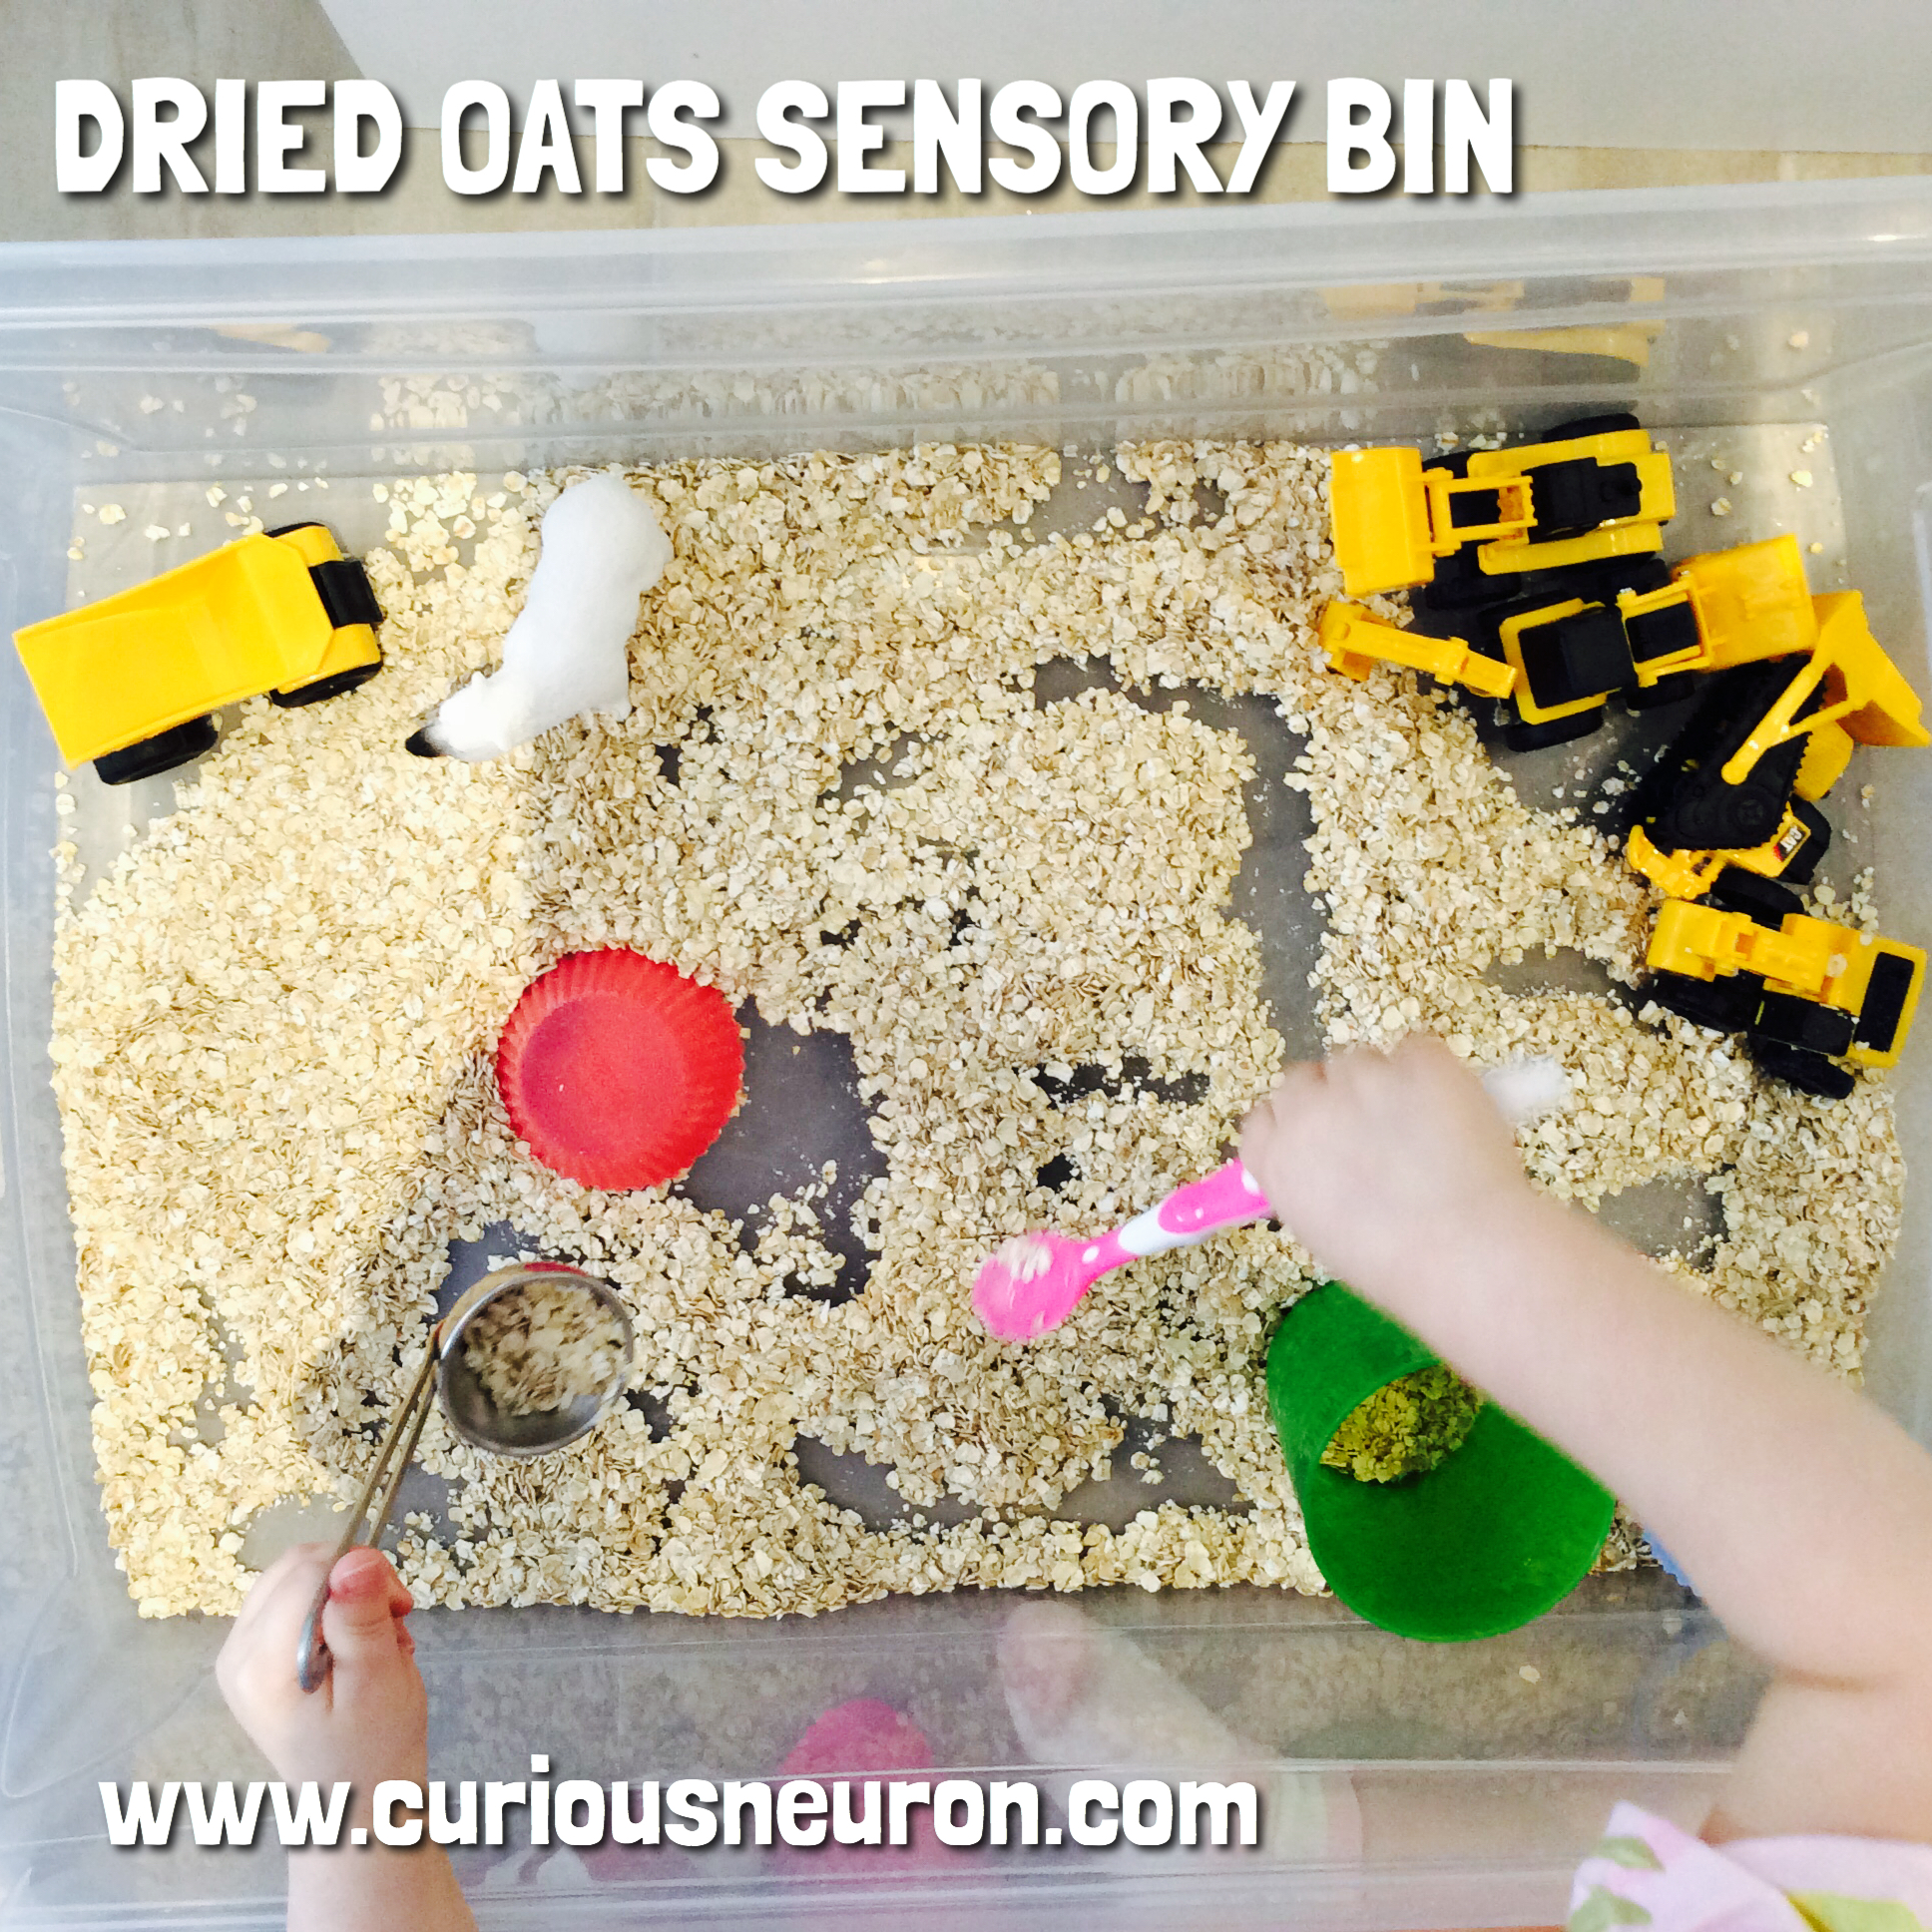 """Quick oats can also be used for a fun sensory bin for both babies and toddlers. You can use this activity to build cognitive skills by 1) hiding items in the oats, 2) showing them how to fill a cup with oats using their hands or a spoon 3) give them simple instructions like """"scoop the oats"""".   12 month cognitive milestones : Explores things in different ways, like shaking, banging, throwing, finds hidden things easily, looks at the right picture or thing when it's named, copies gestures, starts to use things correctly; for example, drinks from a cup, brushes hair, bangs two things together, puts things in a container, takes things out of a container, lets things go without help, pokes with index (pointer) finger, follows simple directions like """"pick up the toy"""".   12 month language milestones : Responds to simple spoken requests."""